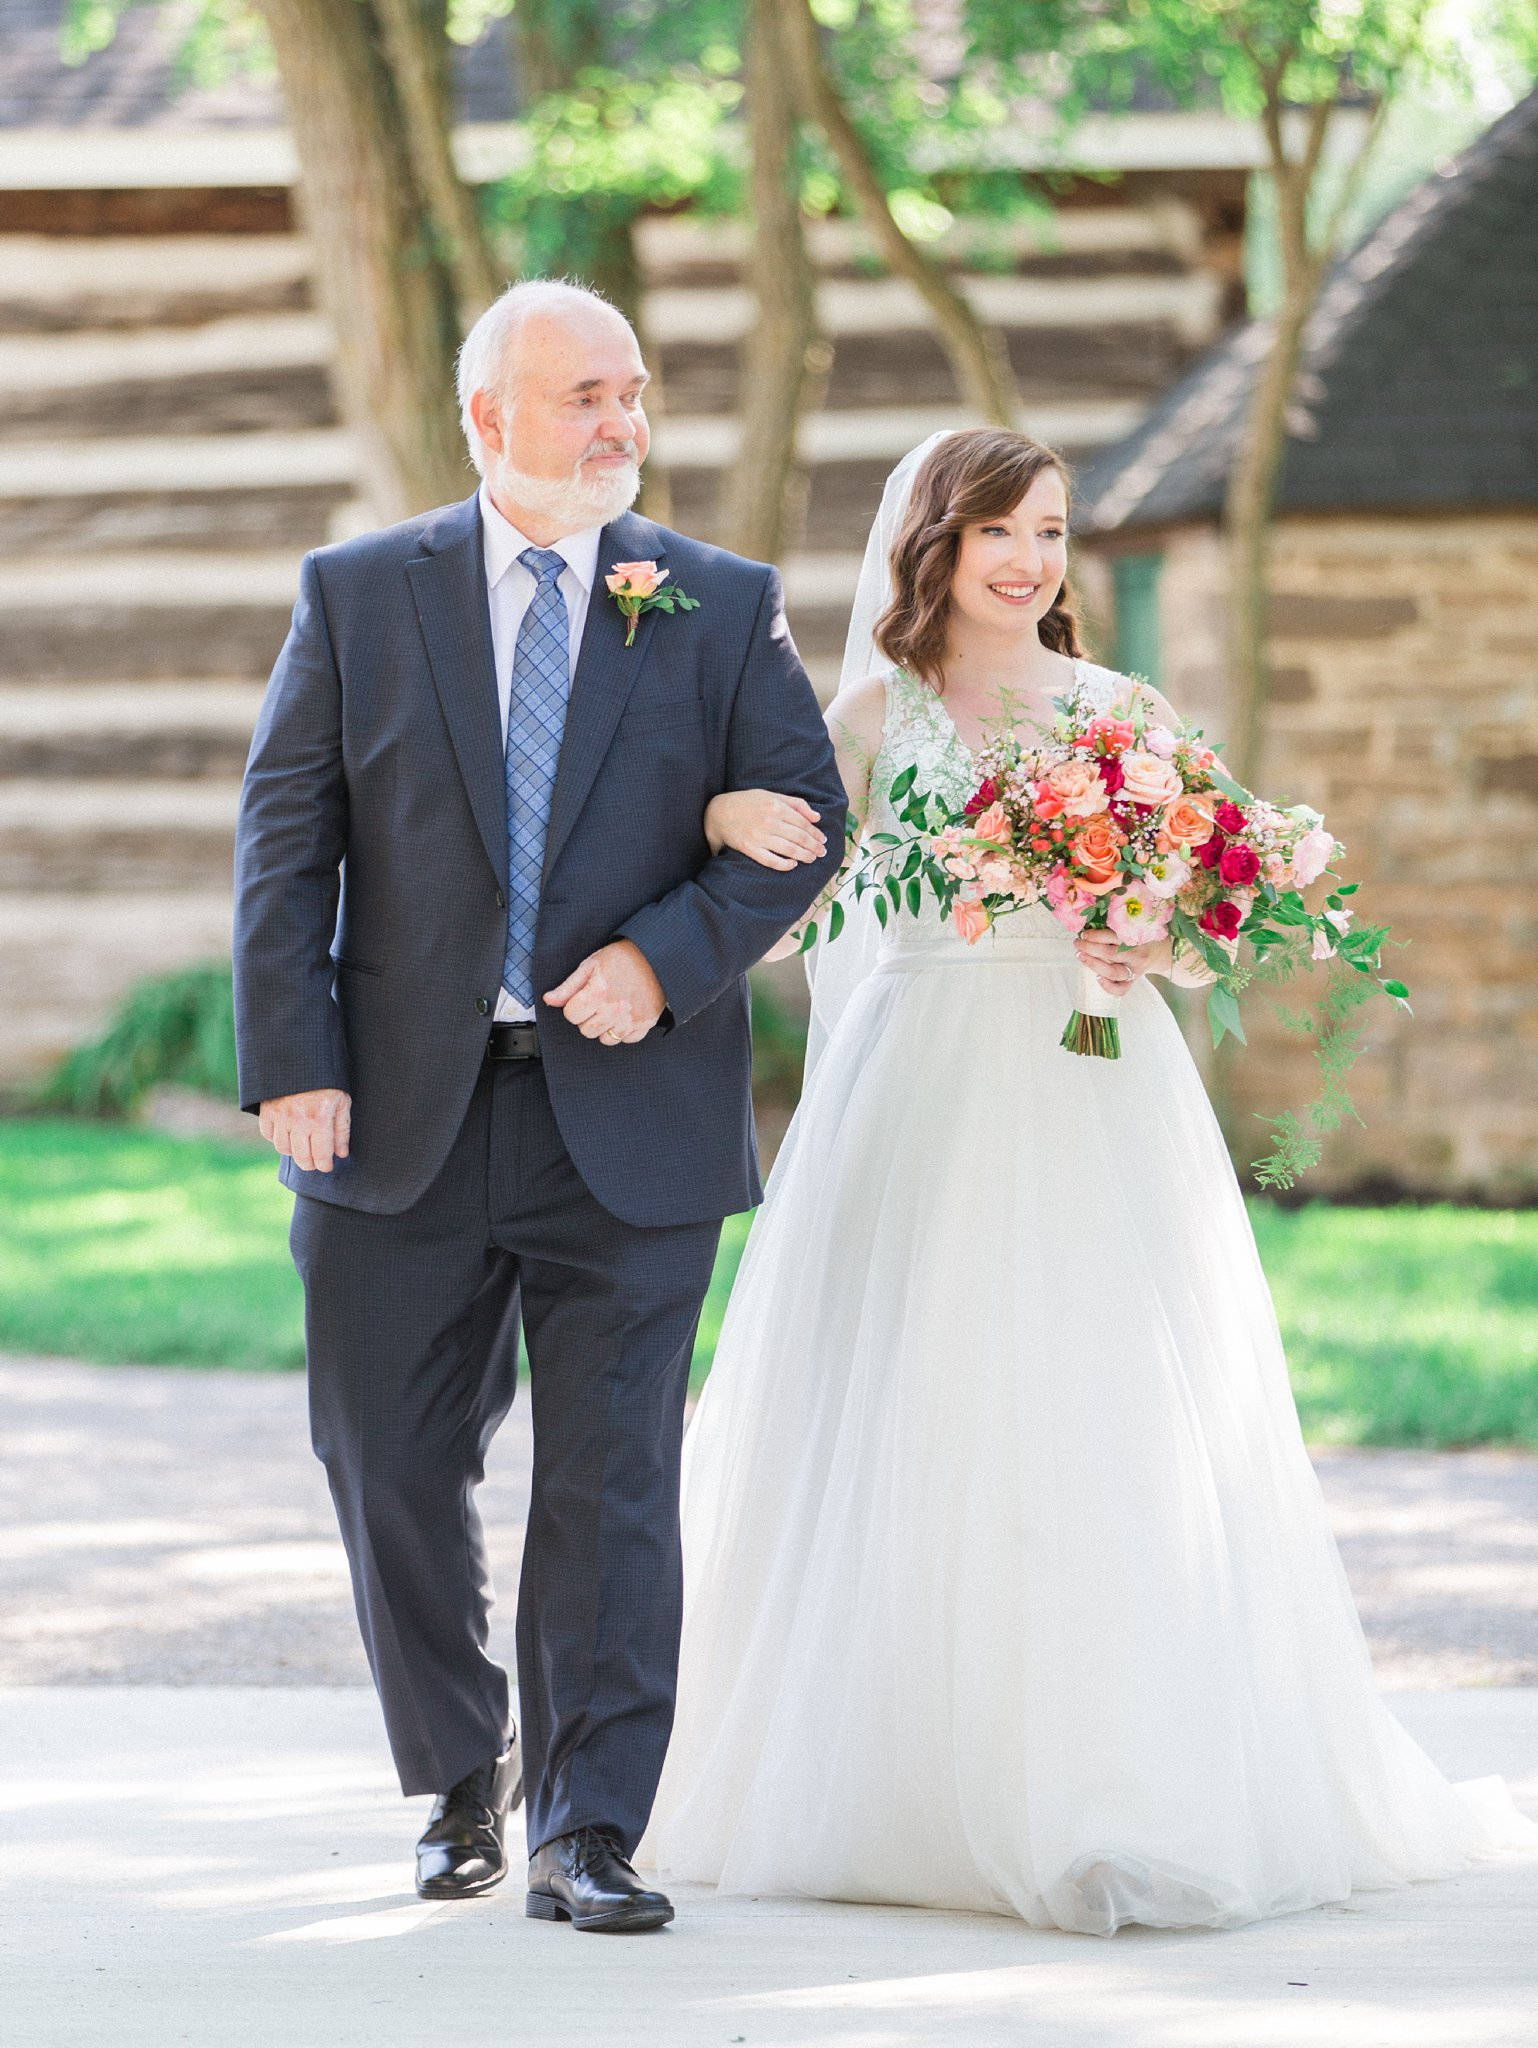 Father walking bride down the aisle Dog-friendly wedding venue Ottawa Stonefields Amy Pinder Photography